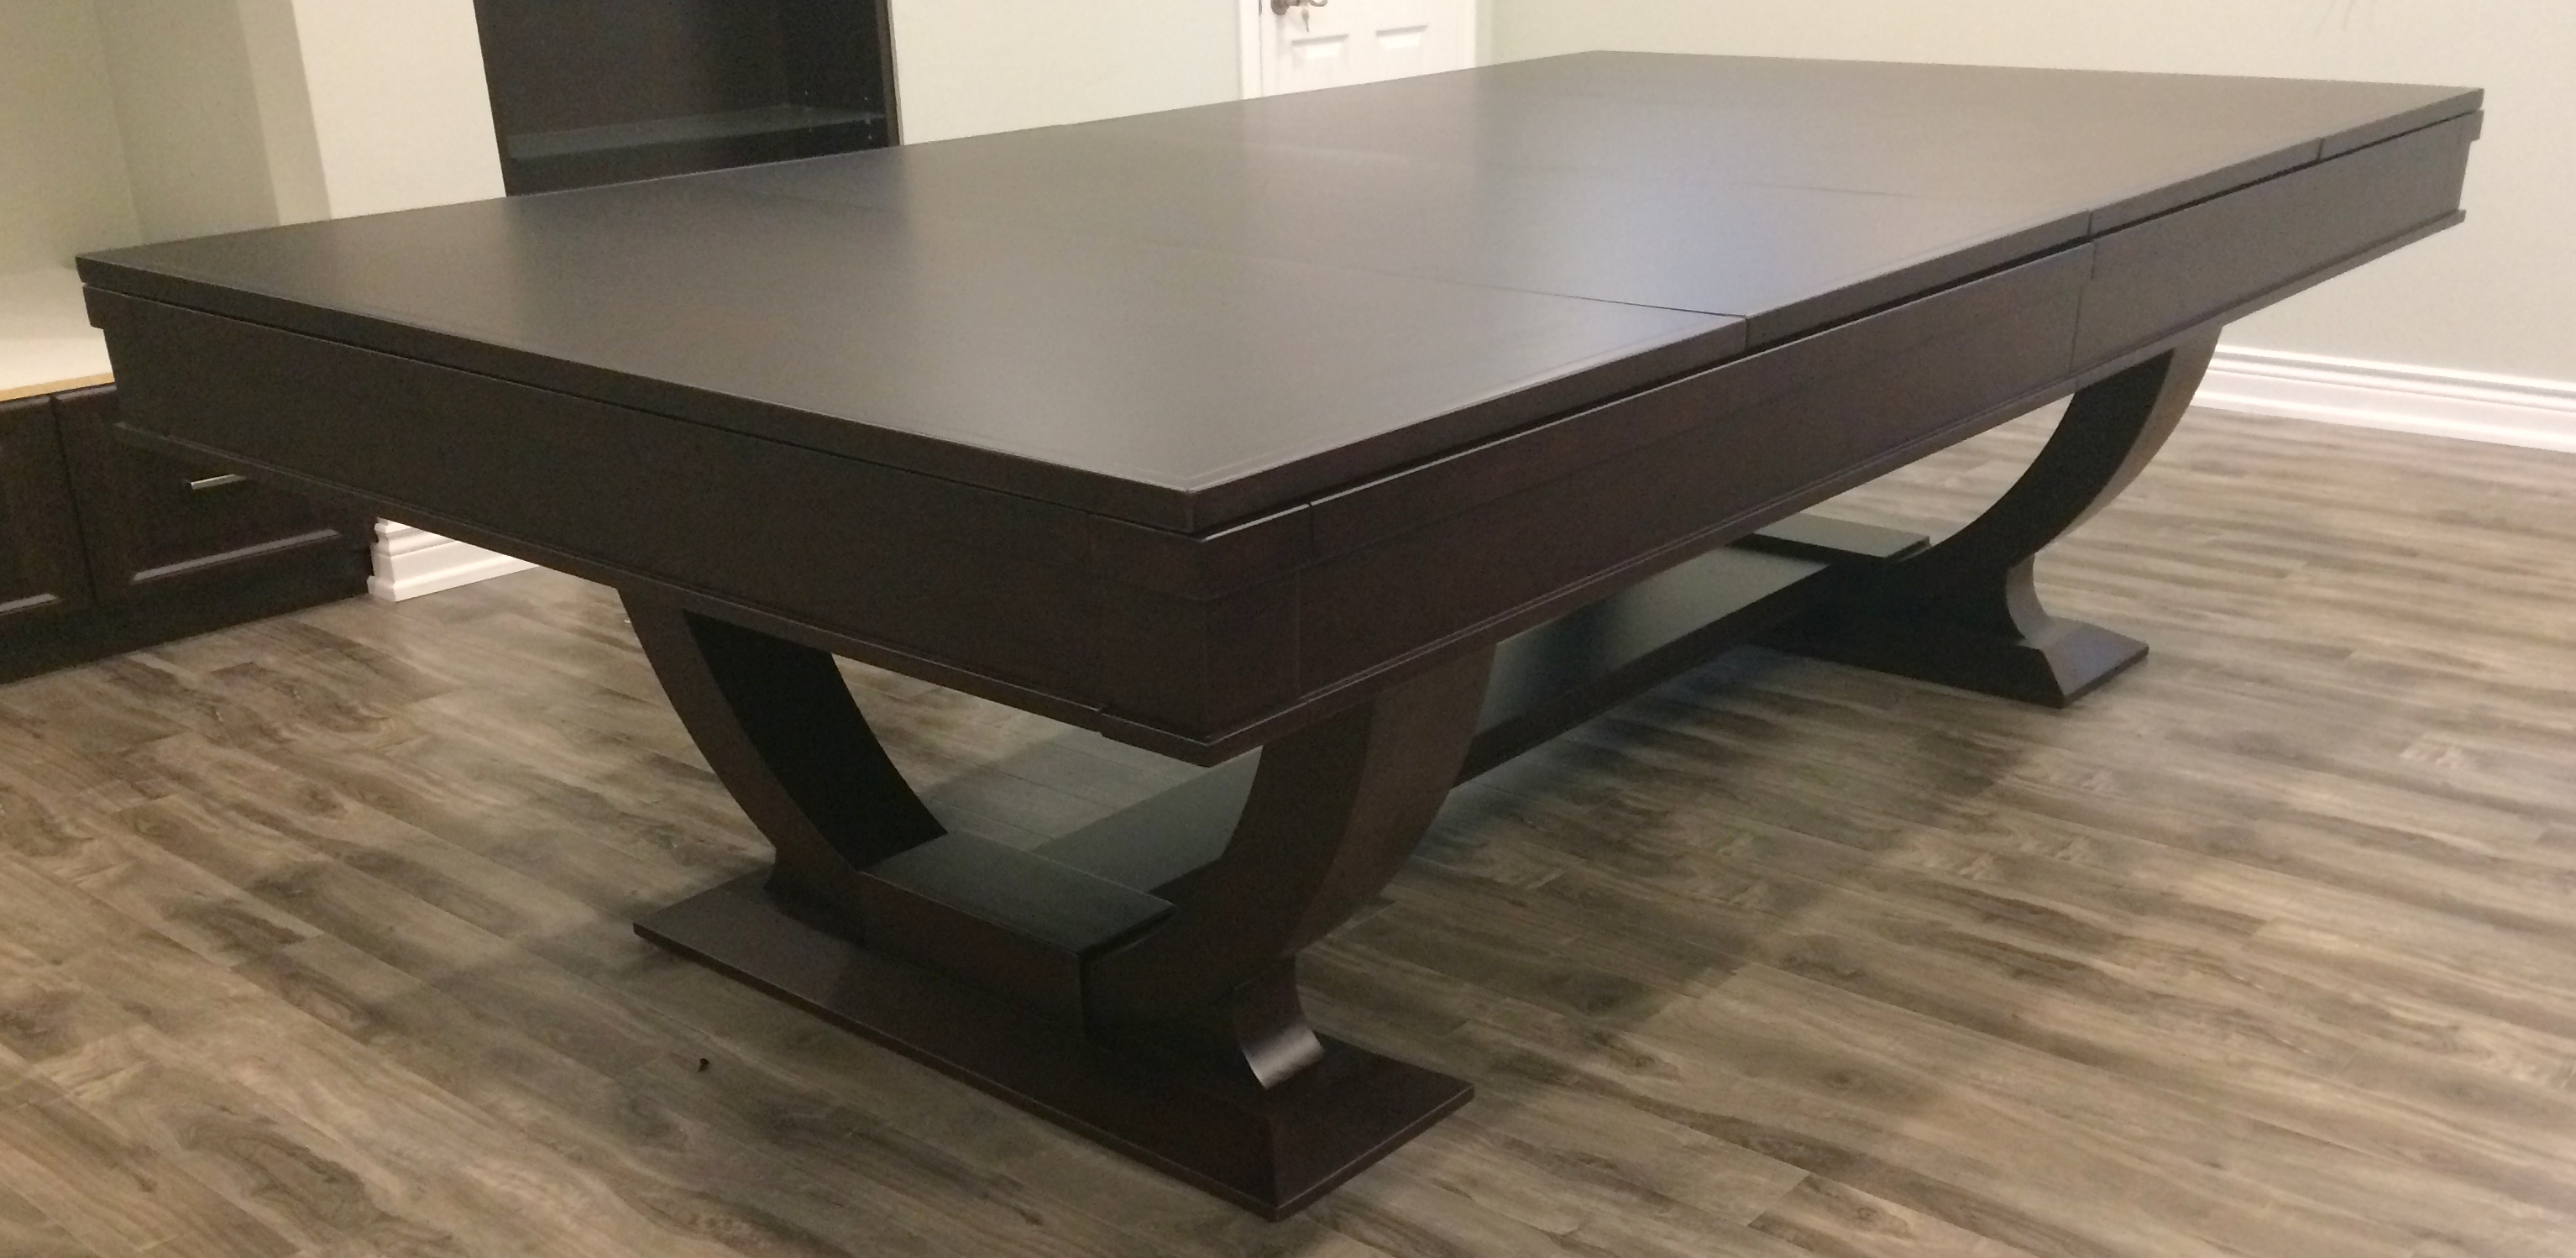 9 Orion Modern Pool Table In Espresso Dining Top Option Discount Pool Tables